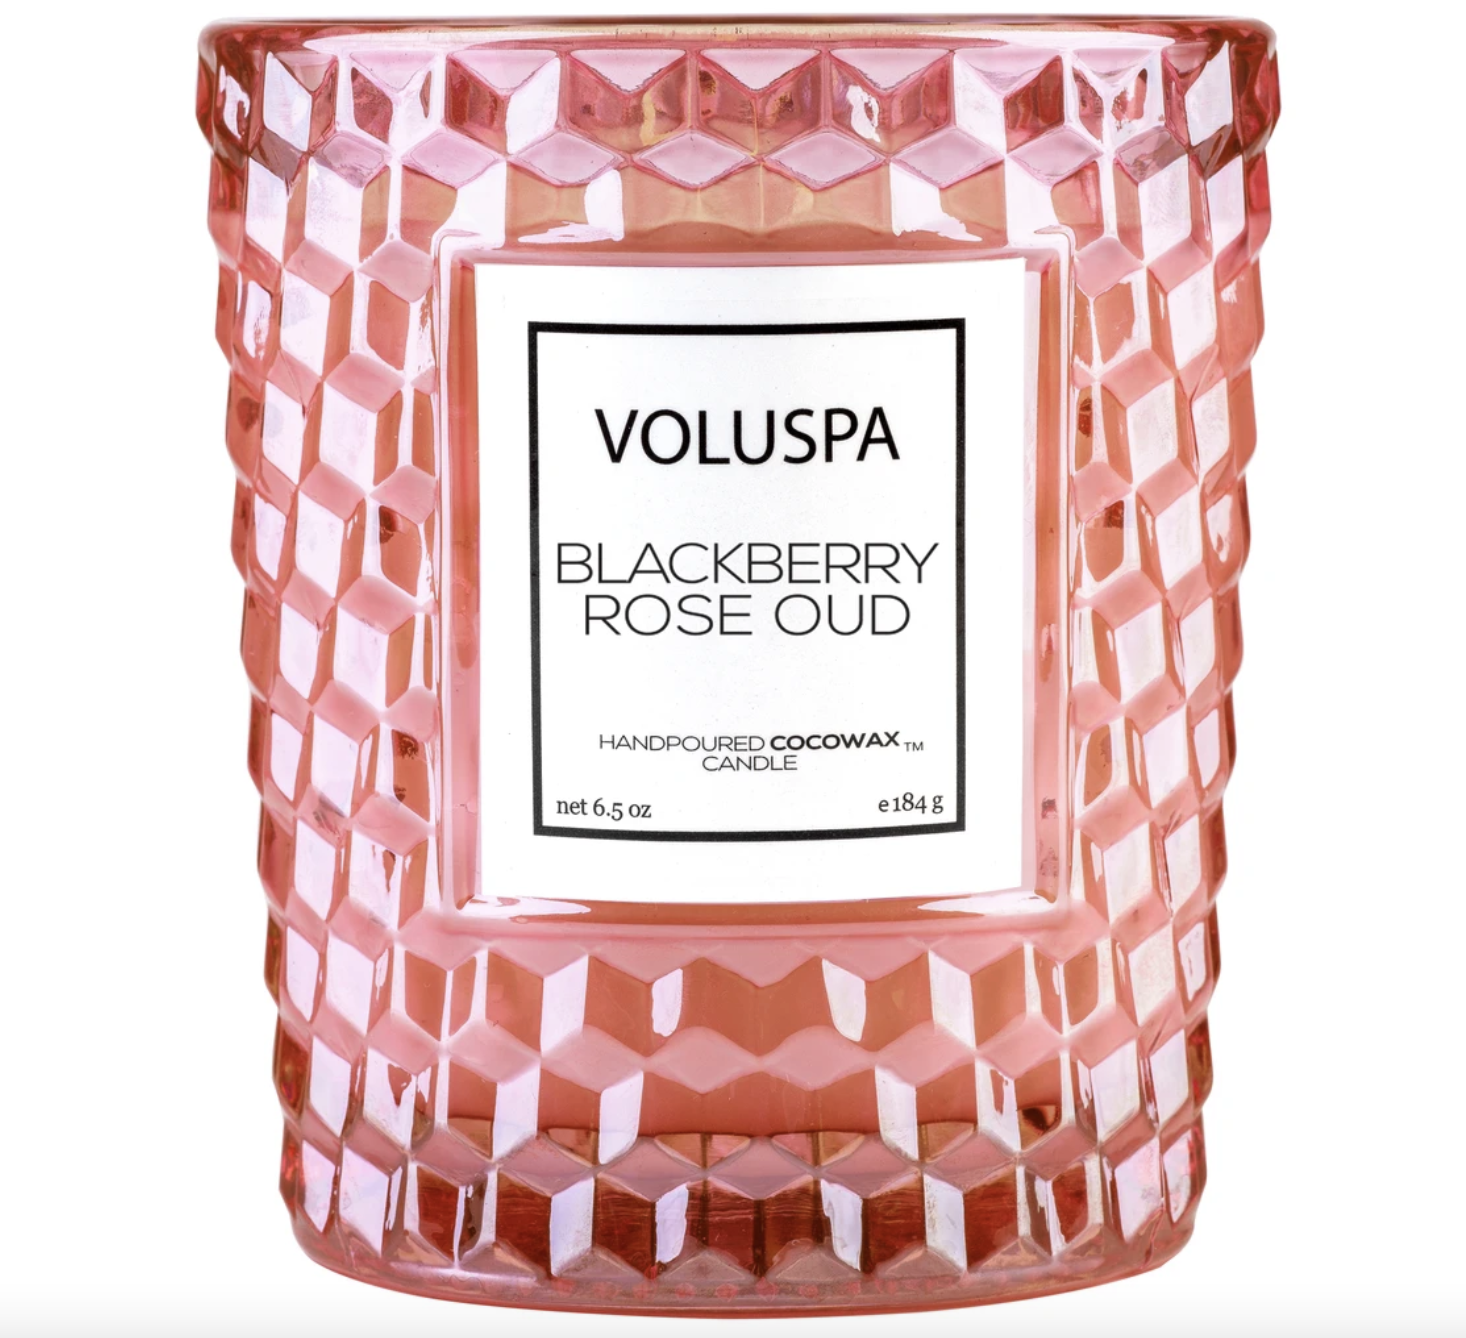 Voluspa Blackberry Rose Oud, Classic Glass Candle, Gift Boxed